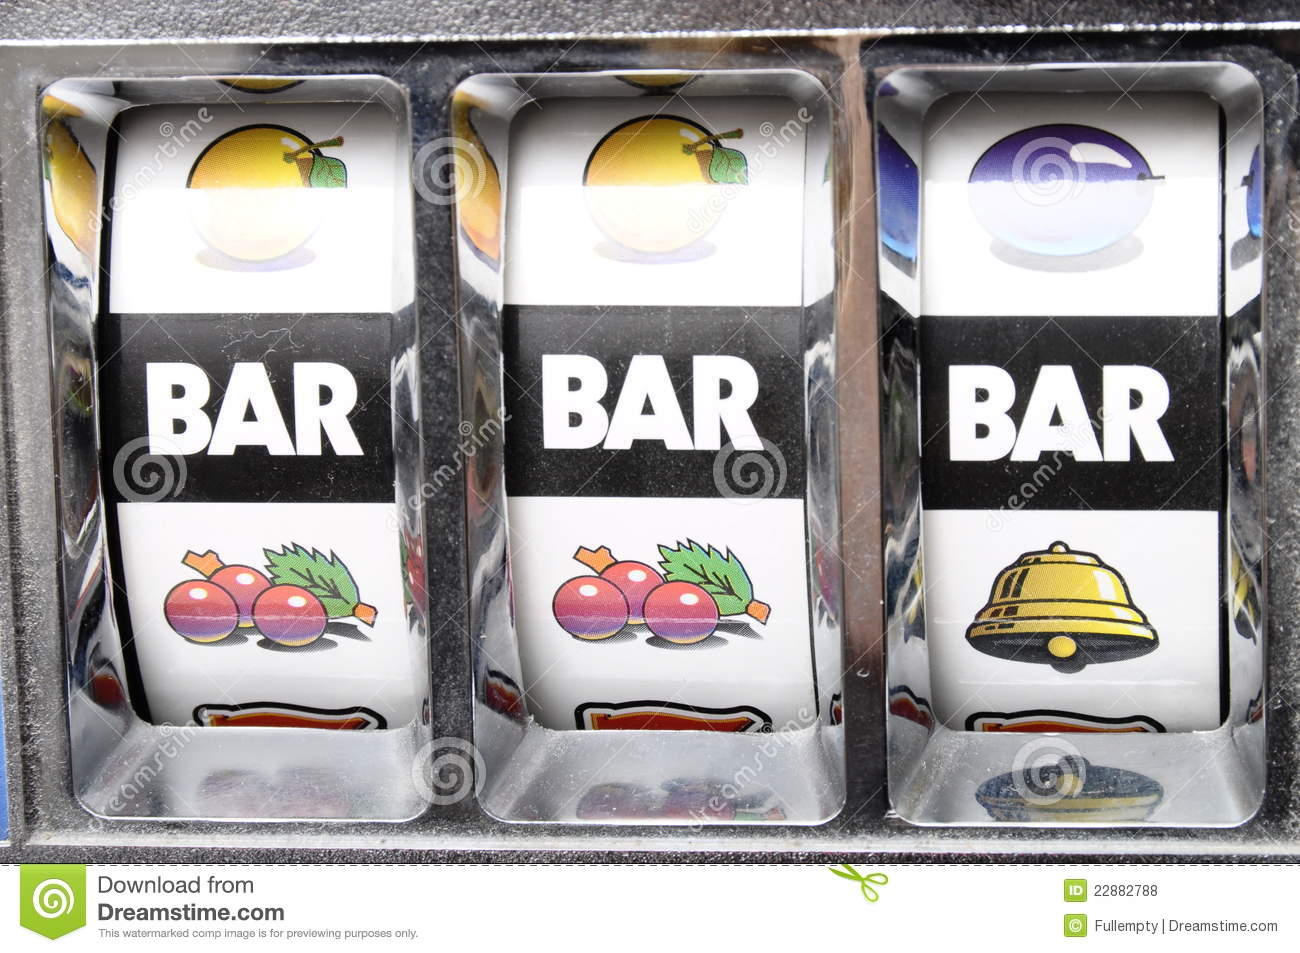 how to win bar slot machine